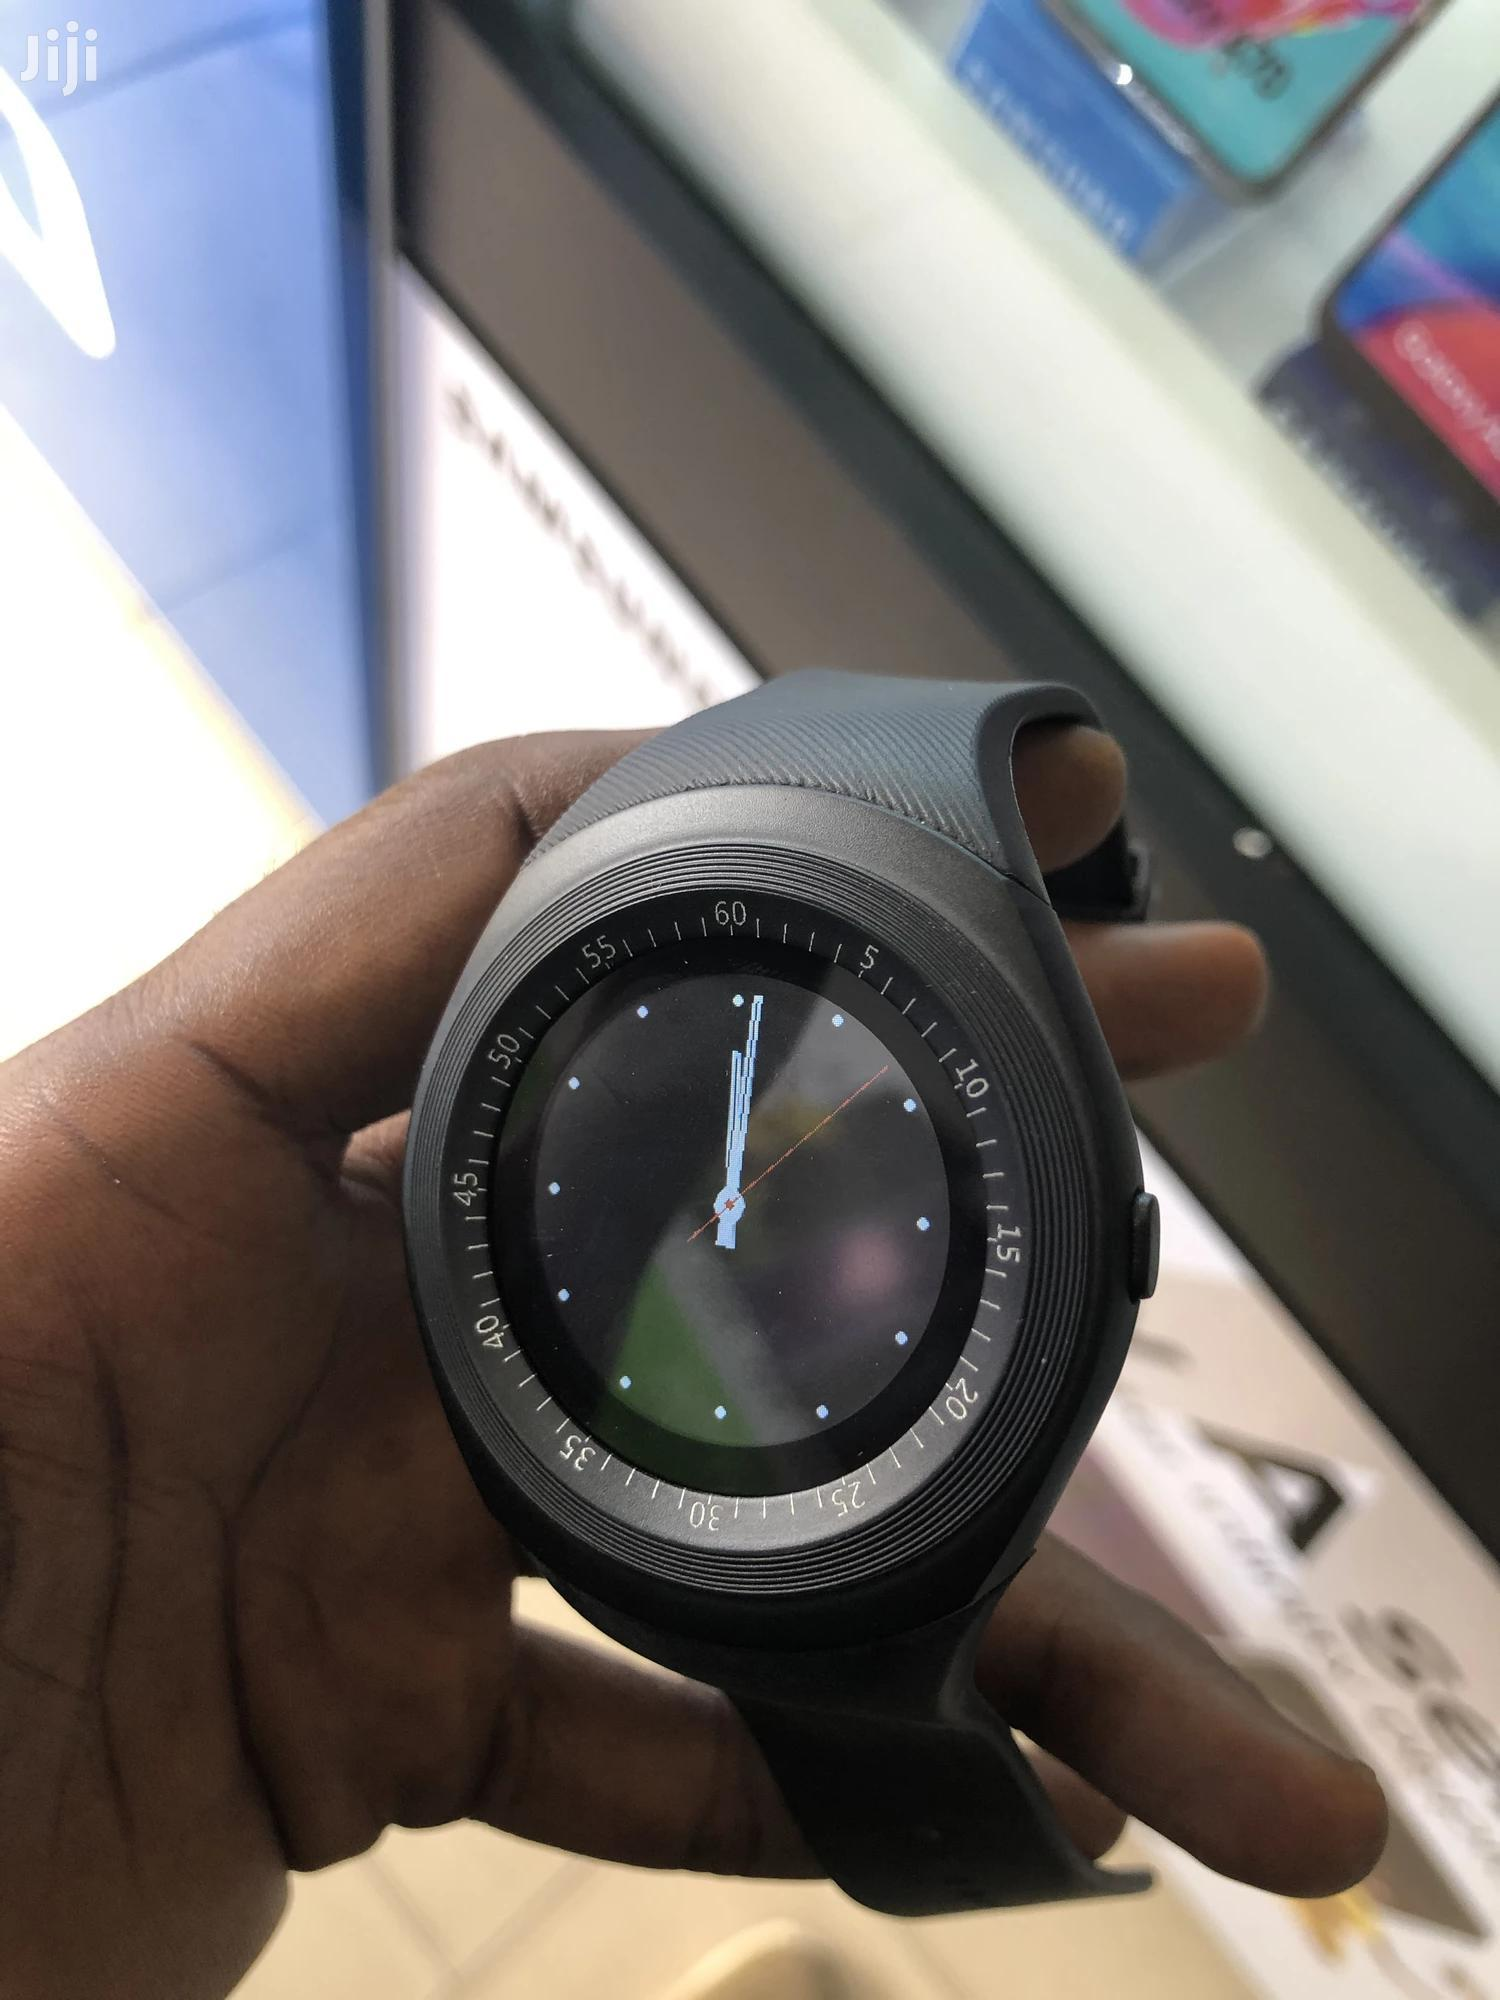 Round Face Smart Watch Phone With Memory Card Support | Smart Watches & Trackers for sale in Adabraka, Greater Accra, Ghana